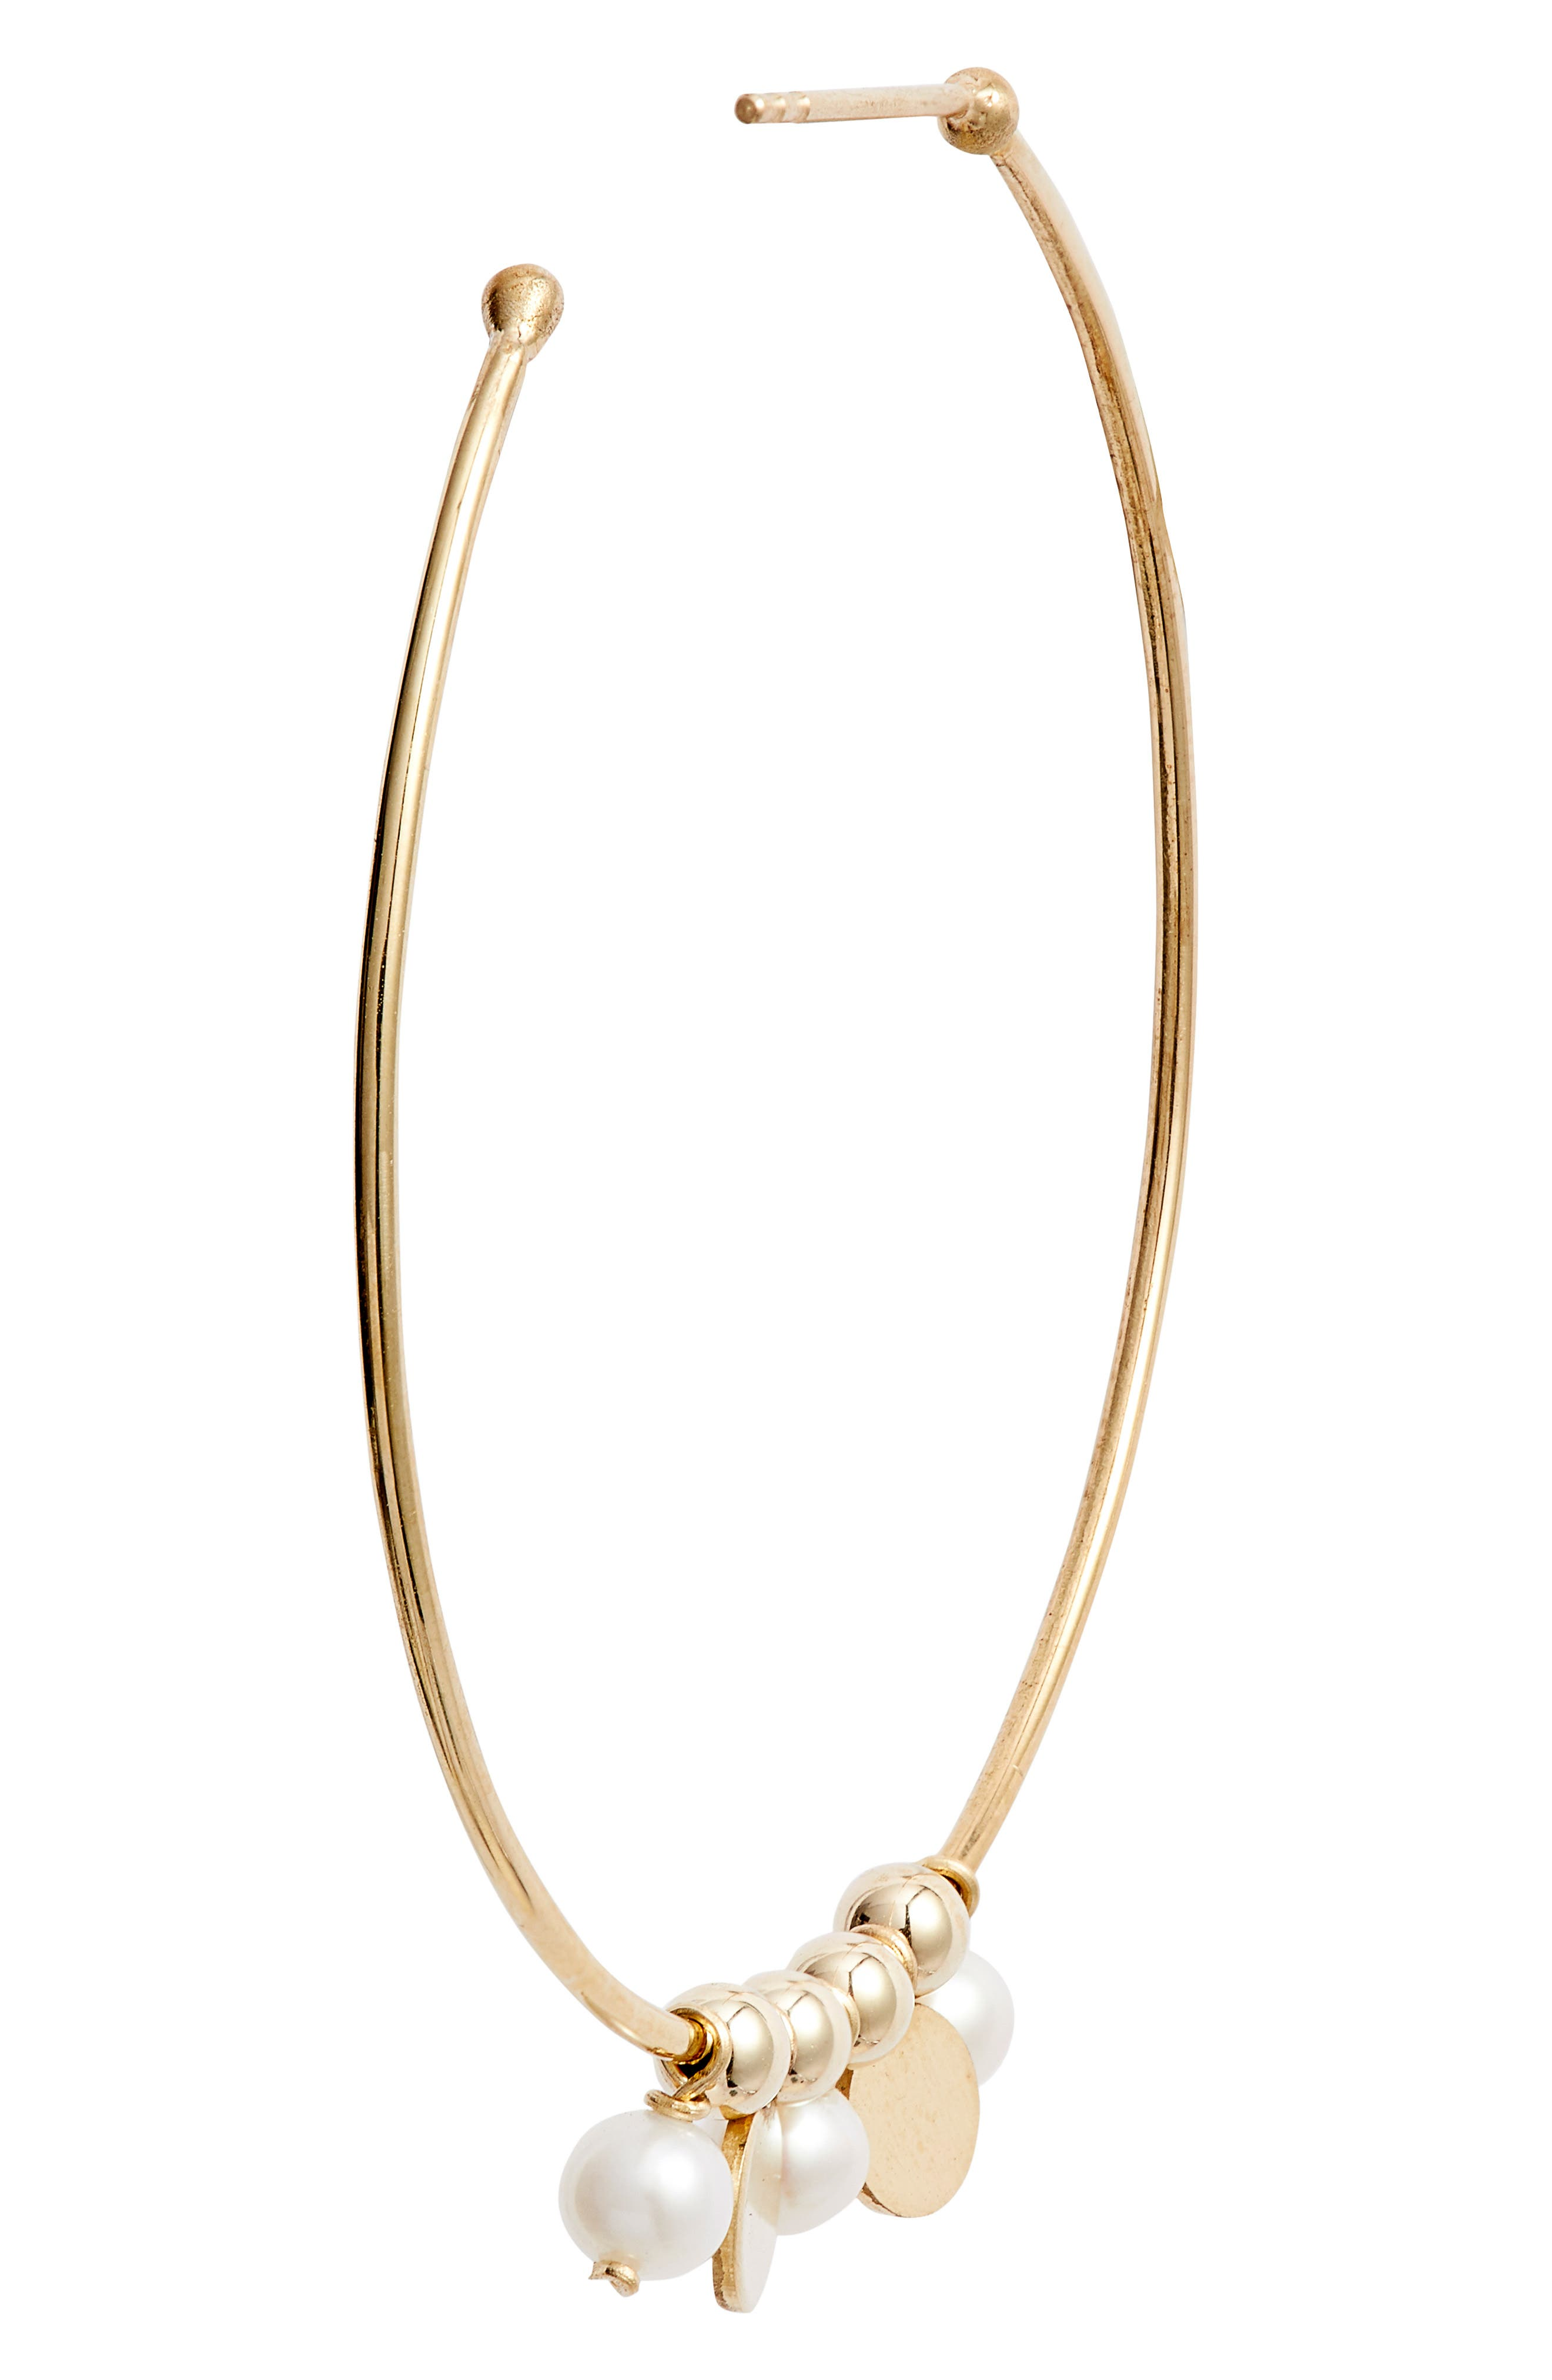 Confetti Pearl Gold Hoop Earrings,                             Alternate thumbnail 3, color,                             YELLOW GOLD/ WHITE PEARL